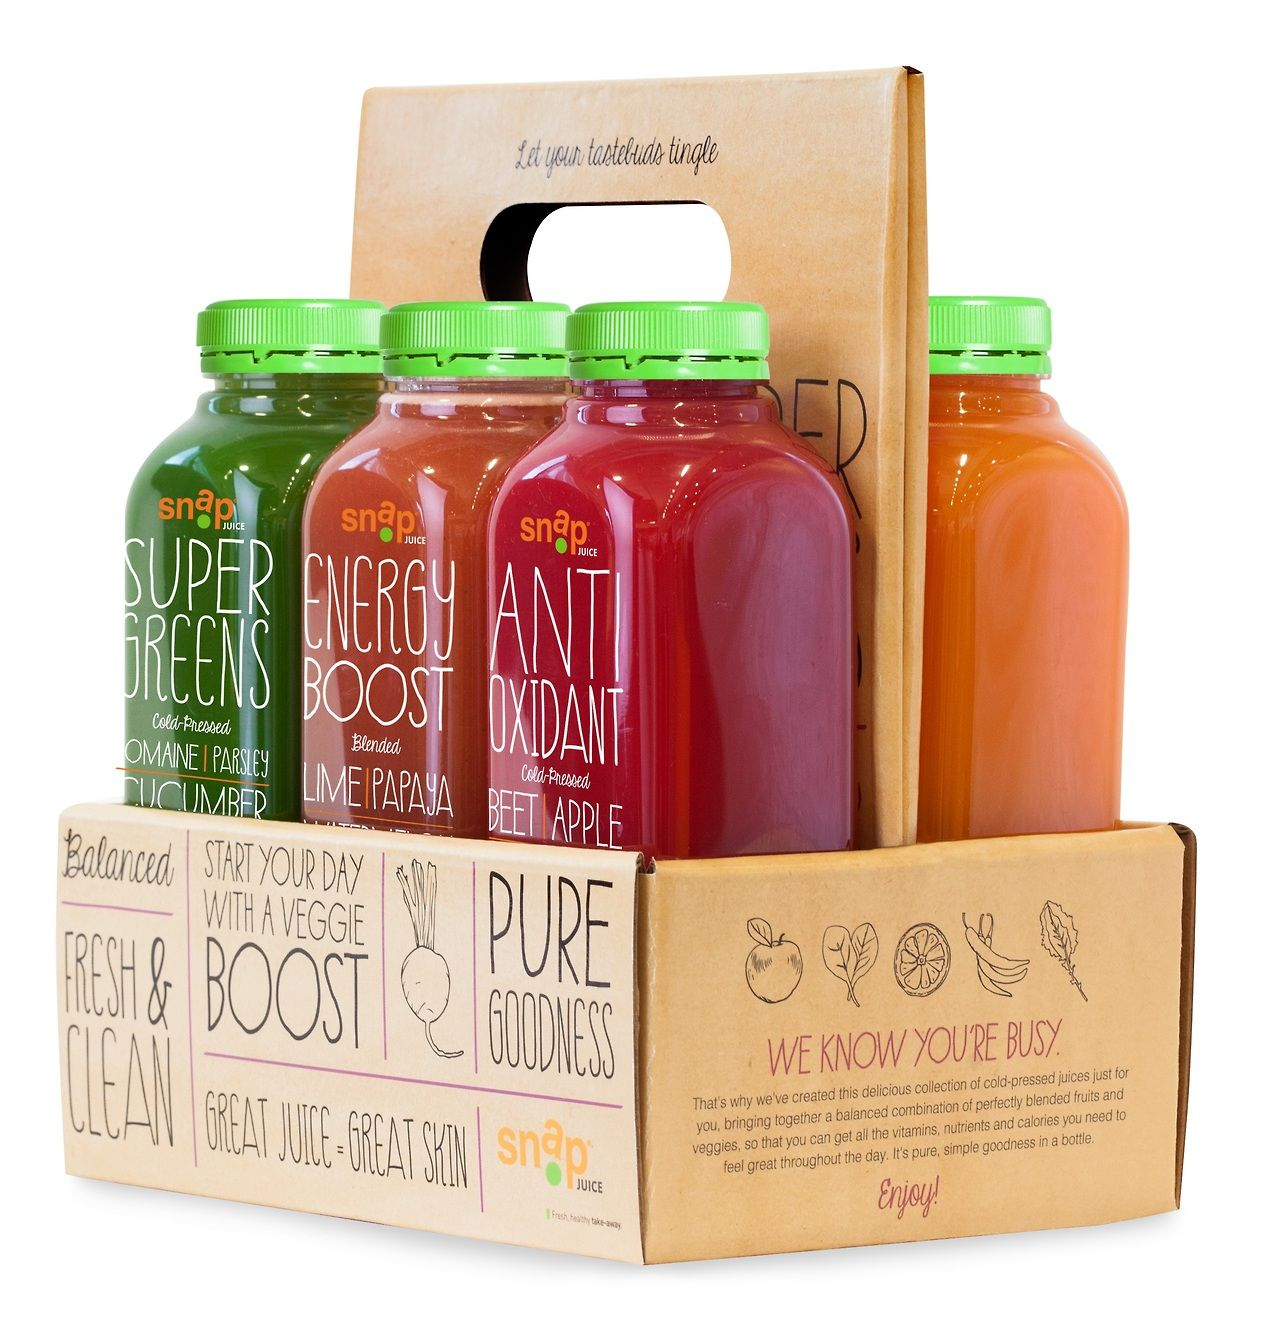 Snap Kitchen   Cold Pressed Juices. So Glad To Have Found One Near Me! # Juicing #Houston #snapkitchen Nice Ideas